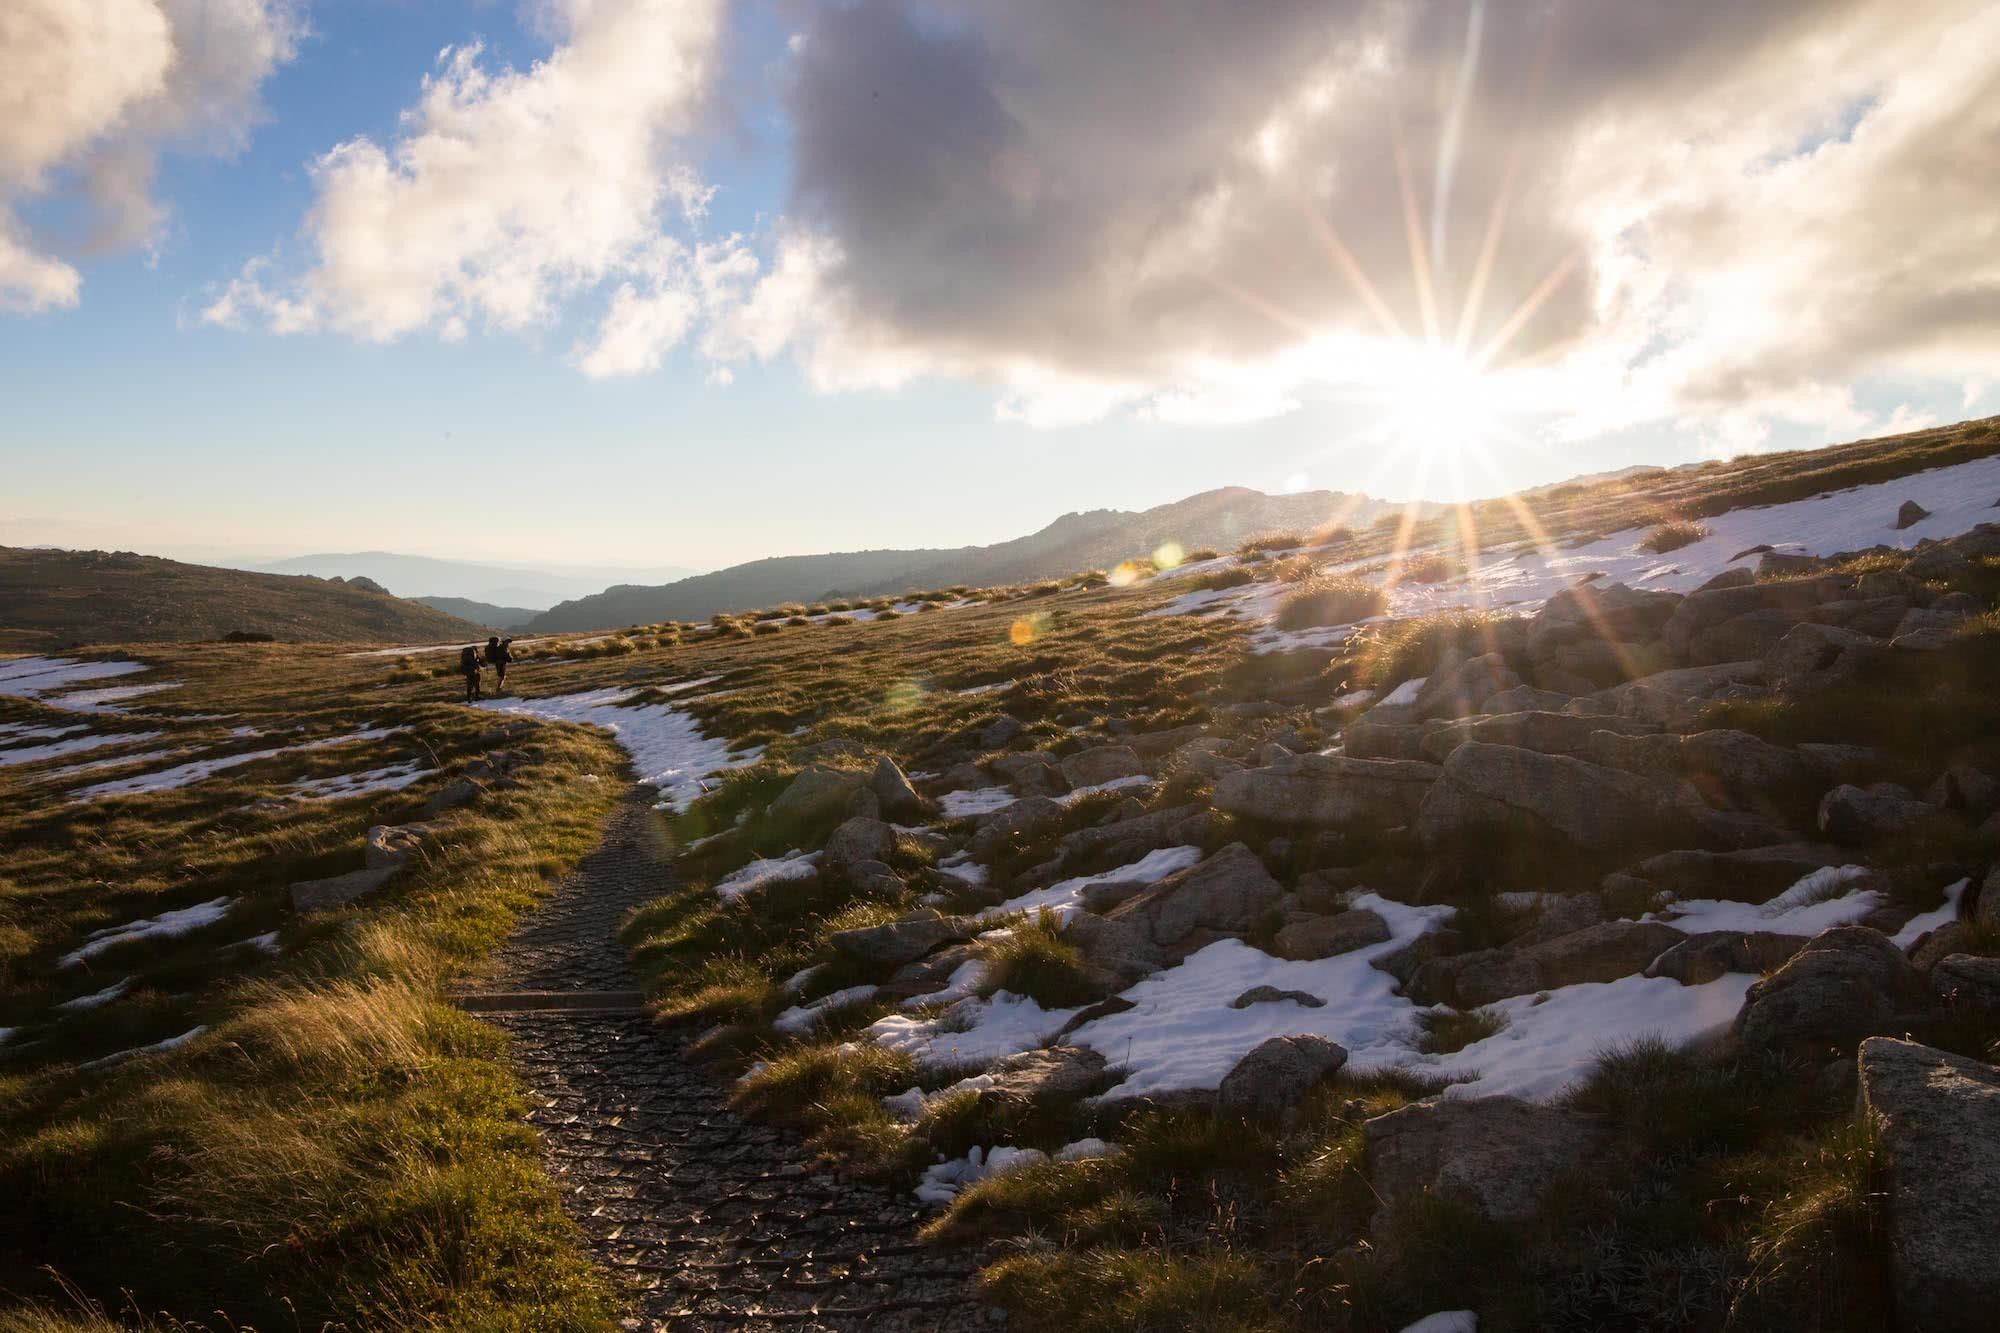 Overnighting On The Main Range // Kosciuszko National Park (NSW), Rachel Dimond, Main Range Kosciuszko snow winter mountains, sunlight